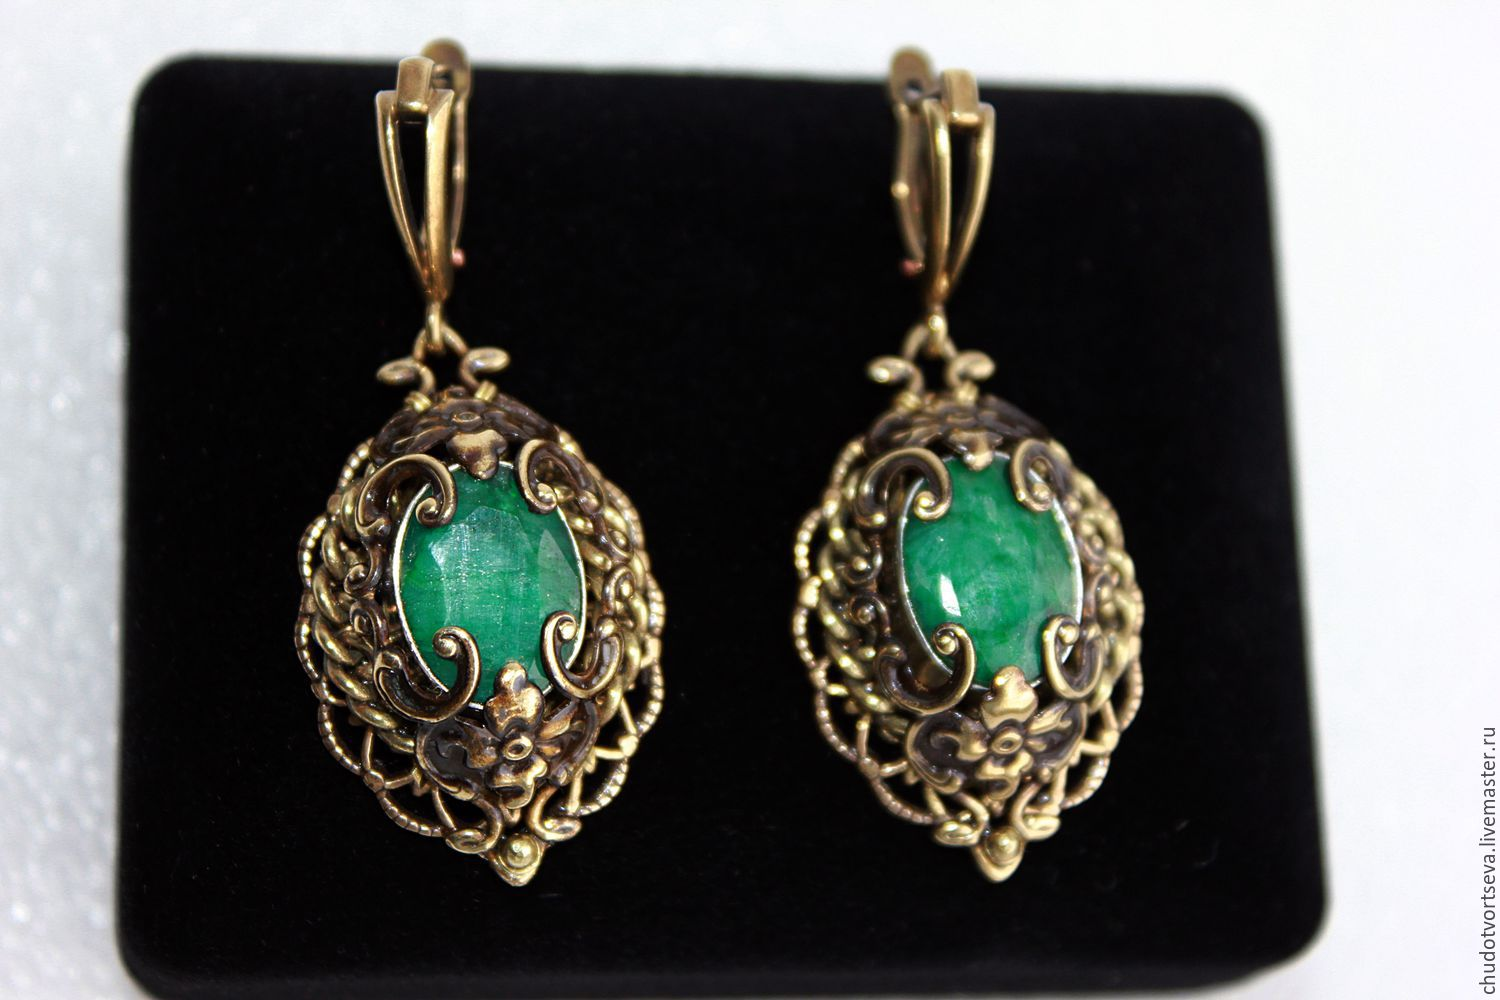 a russie earrings paste antique pear victorian drop la shape vieille